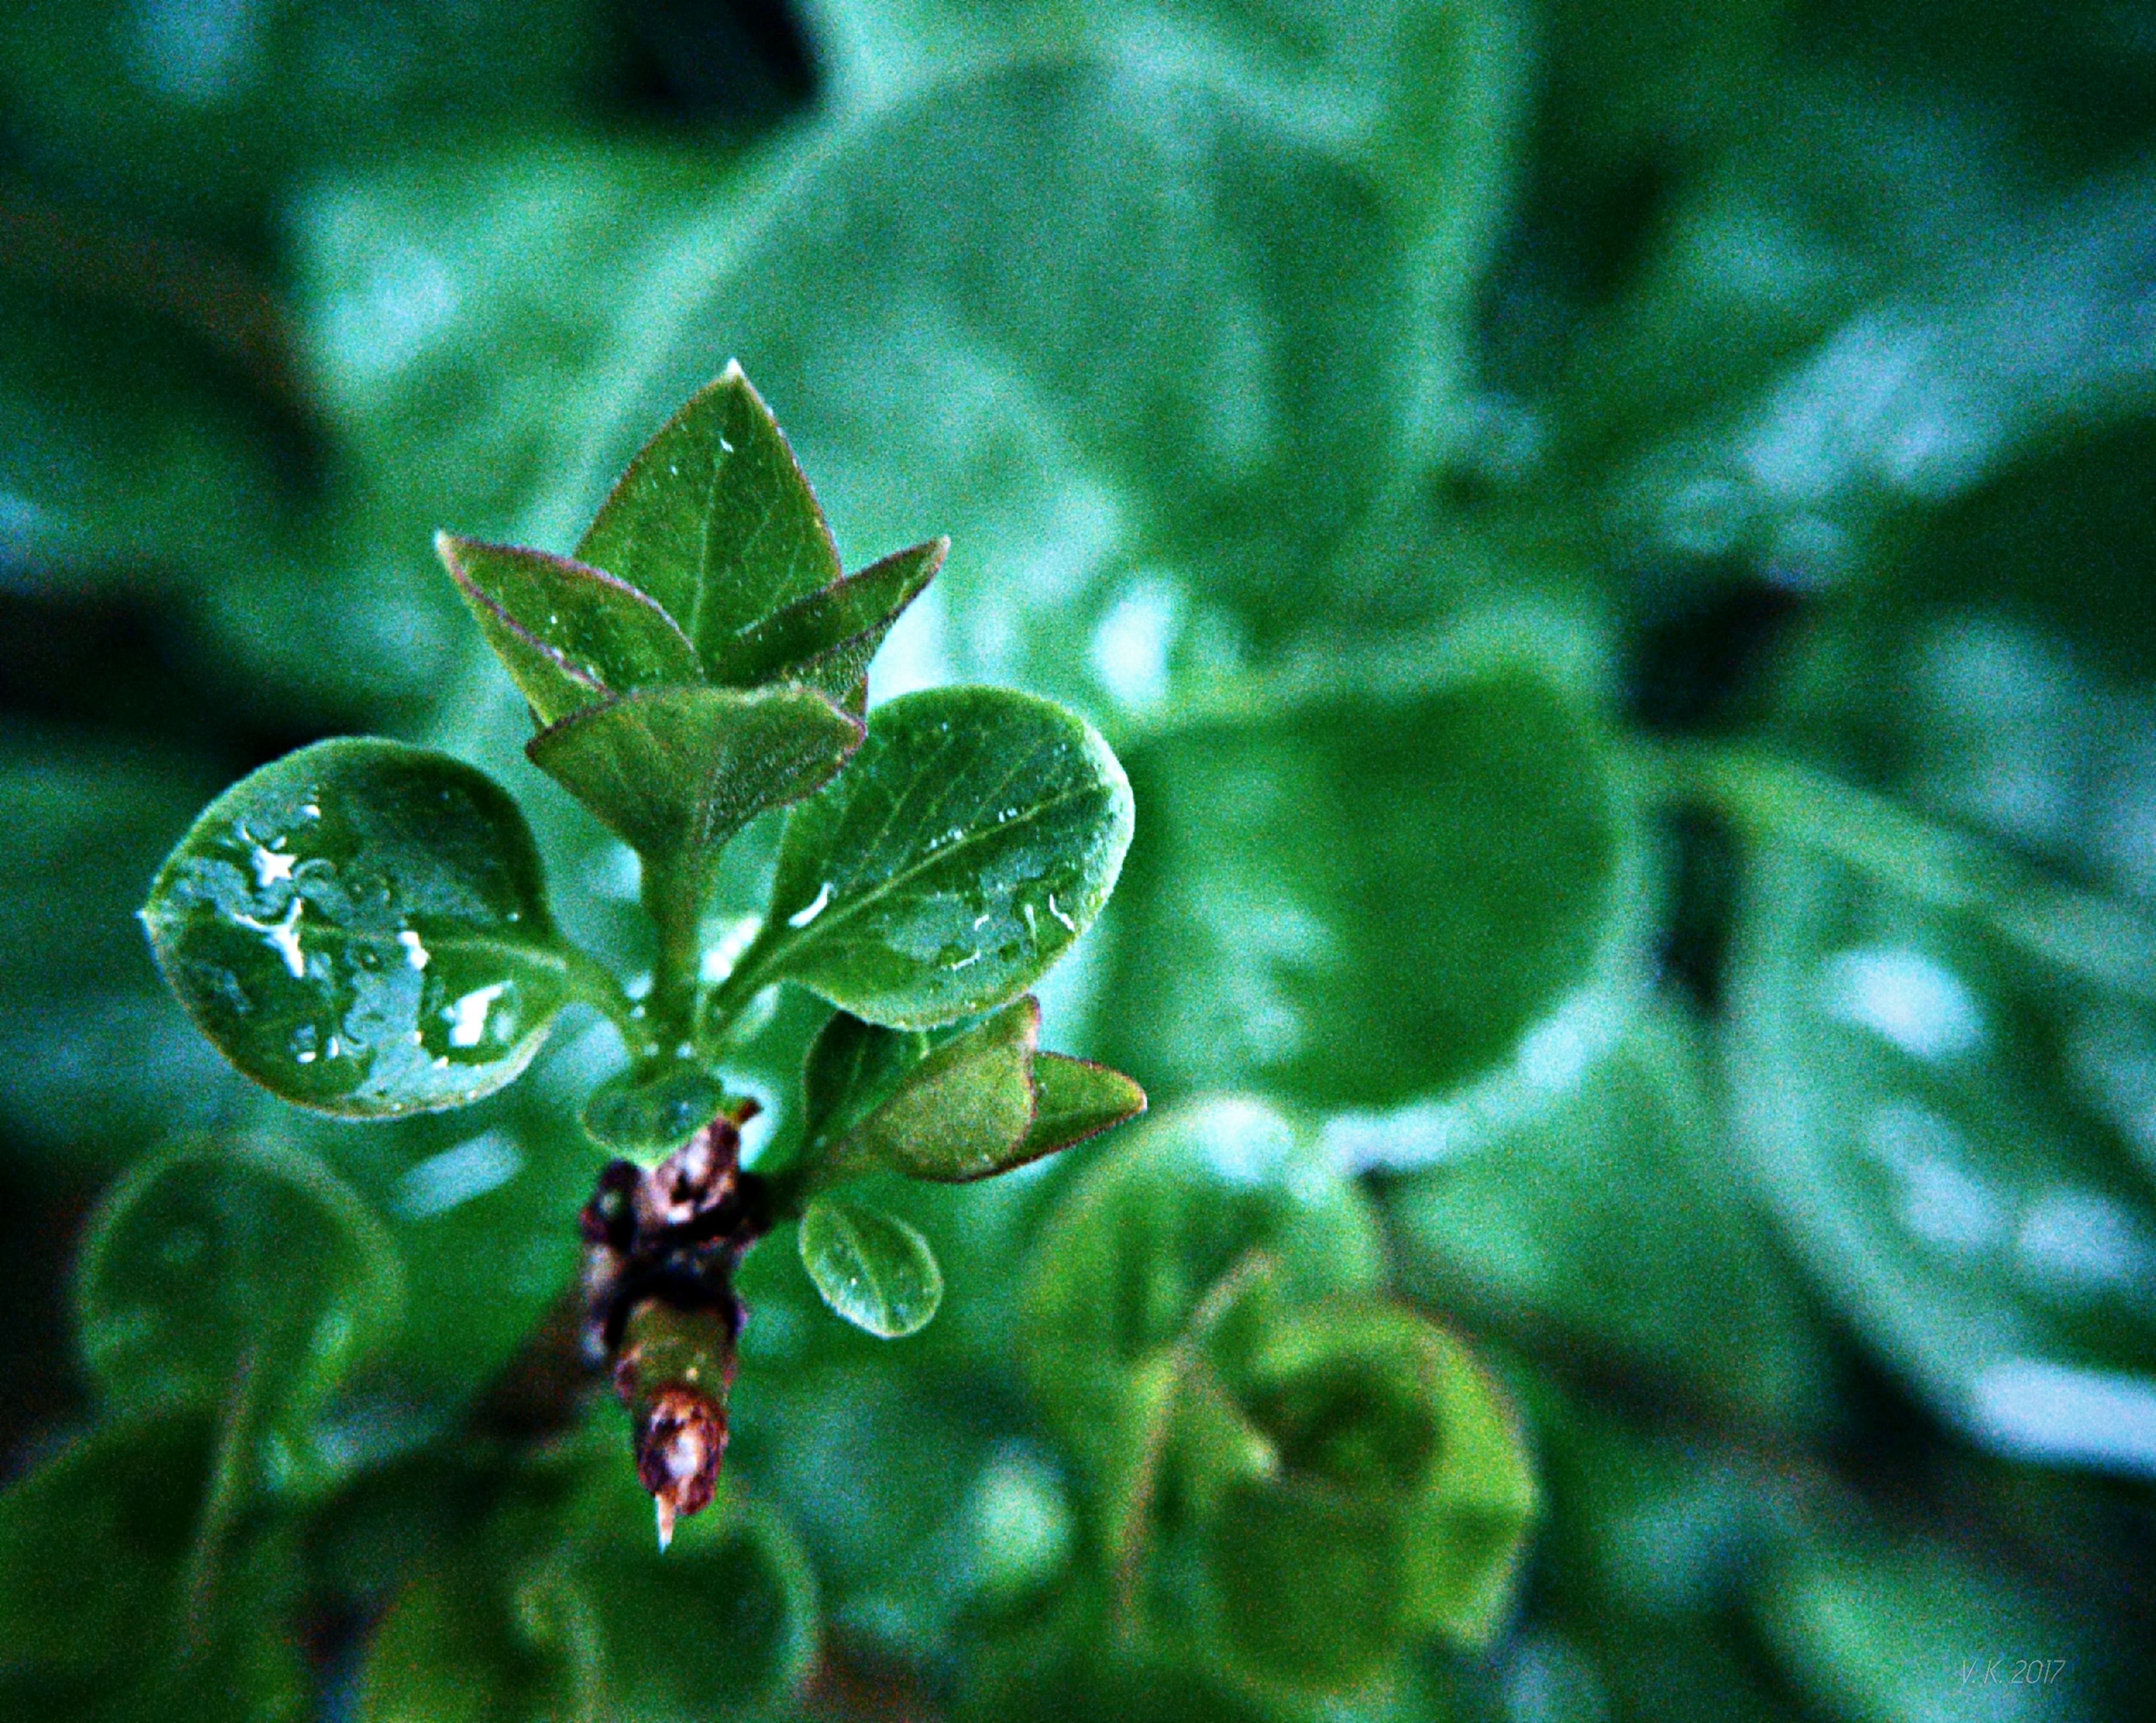 growth, plant, leaf, nature, close-up, green color, drop, no people, focus on foreground, day, beauty in nature, outdoors, fragility, freshness